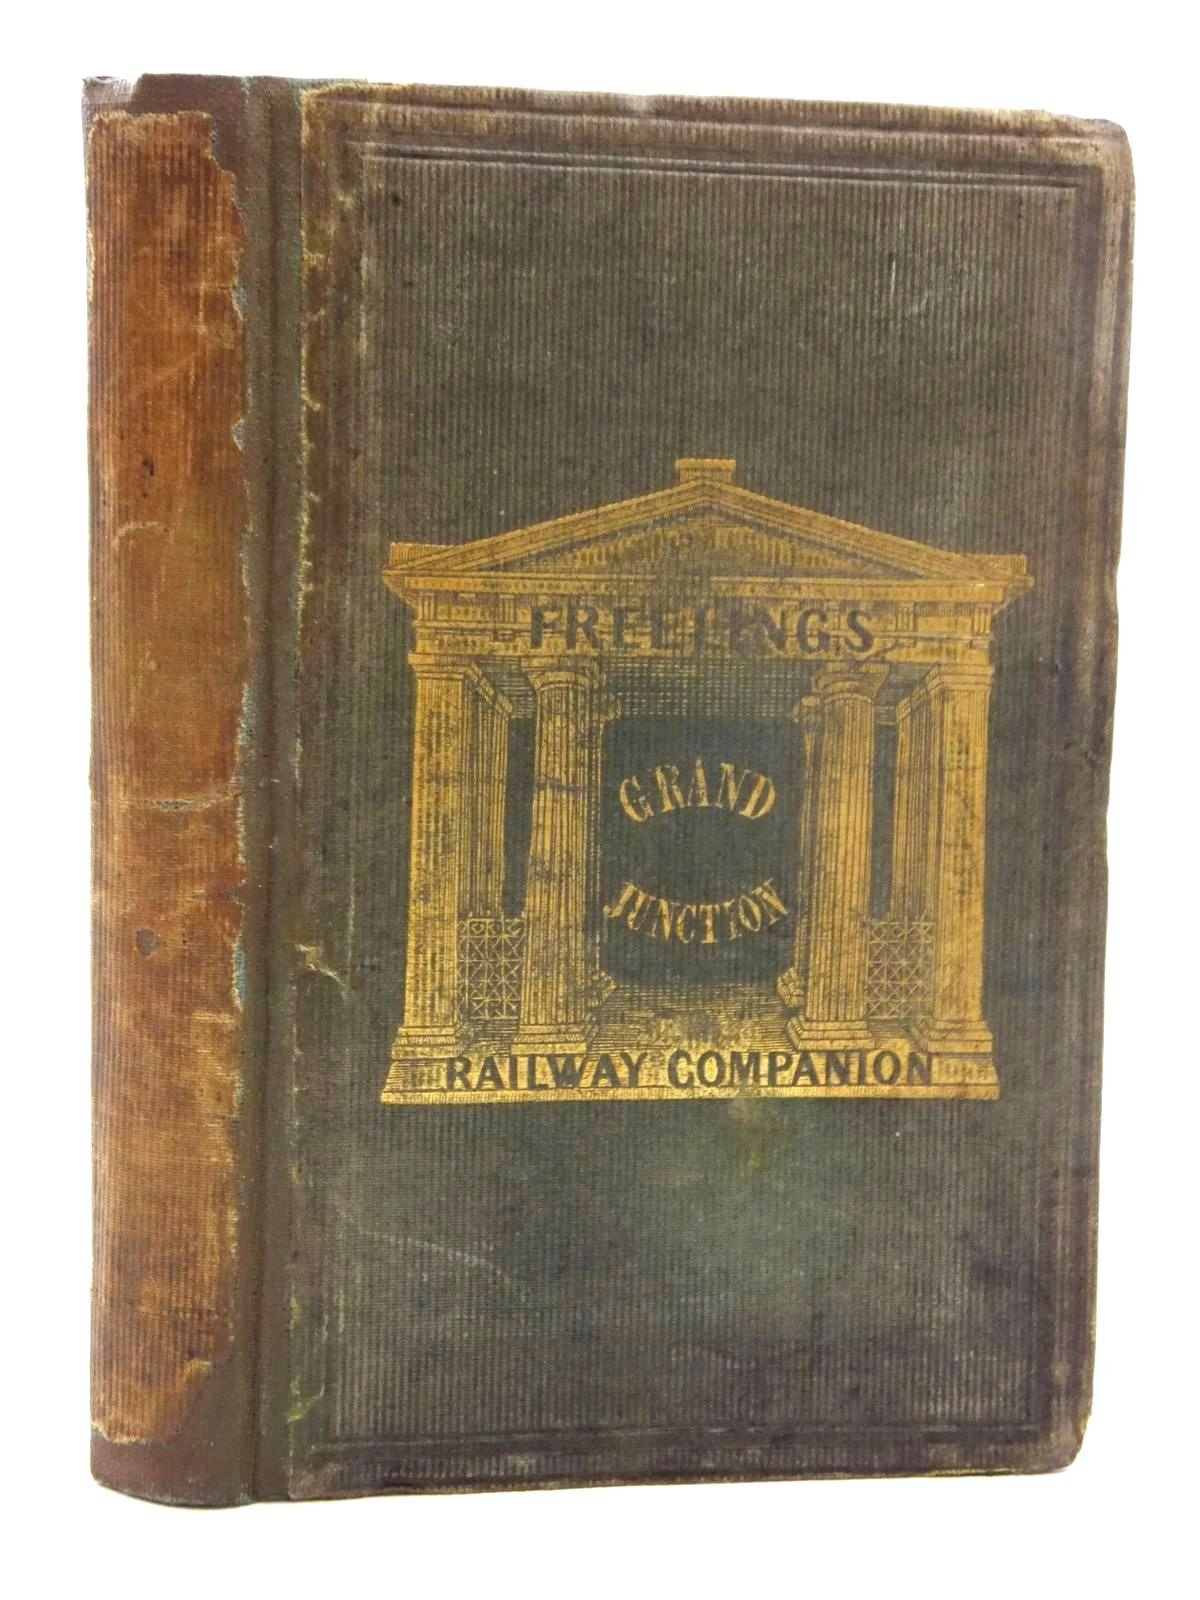 Photo of FREELING'S GRAND JUNCTION RAILWAY COMPANION TO LIVERPOOL, MANCHESTER AND BIRMINGHAM written by Freeling, Arthur published by Whittaker & Co. (STOCK CODE: 2123642)  for sale by Stella & Rose's Books